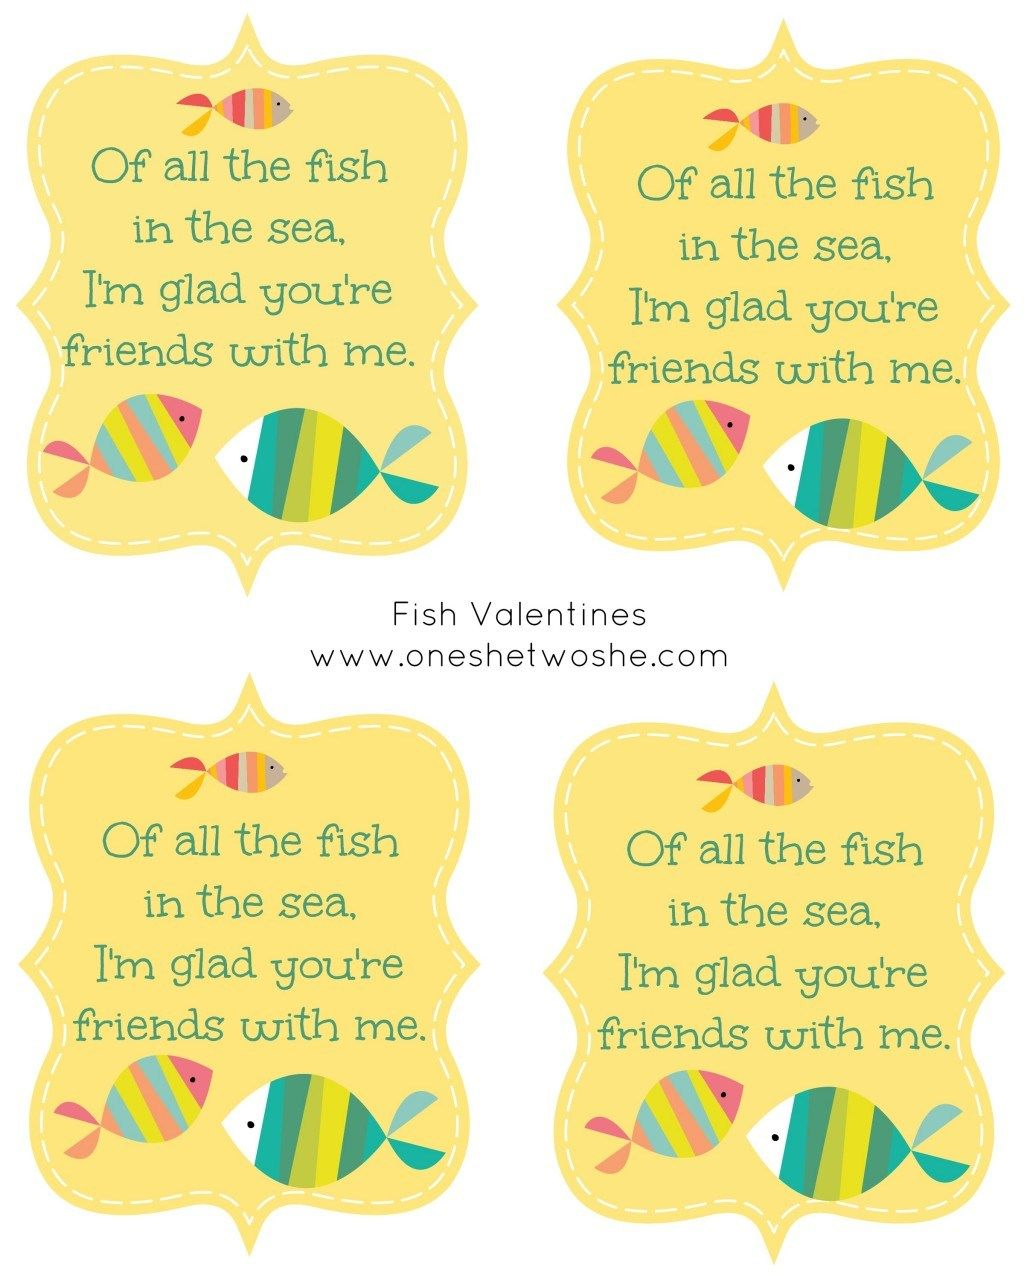 photo about Goldfish Valentine Printable named Of All the Fish within just the Sea Fish Valentine Printable